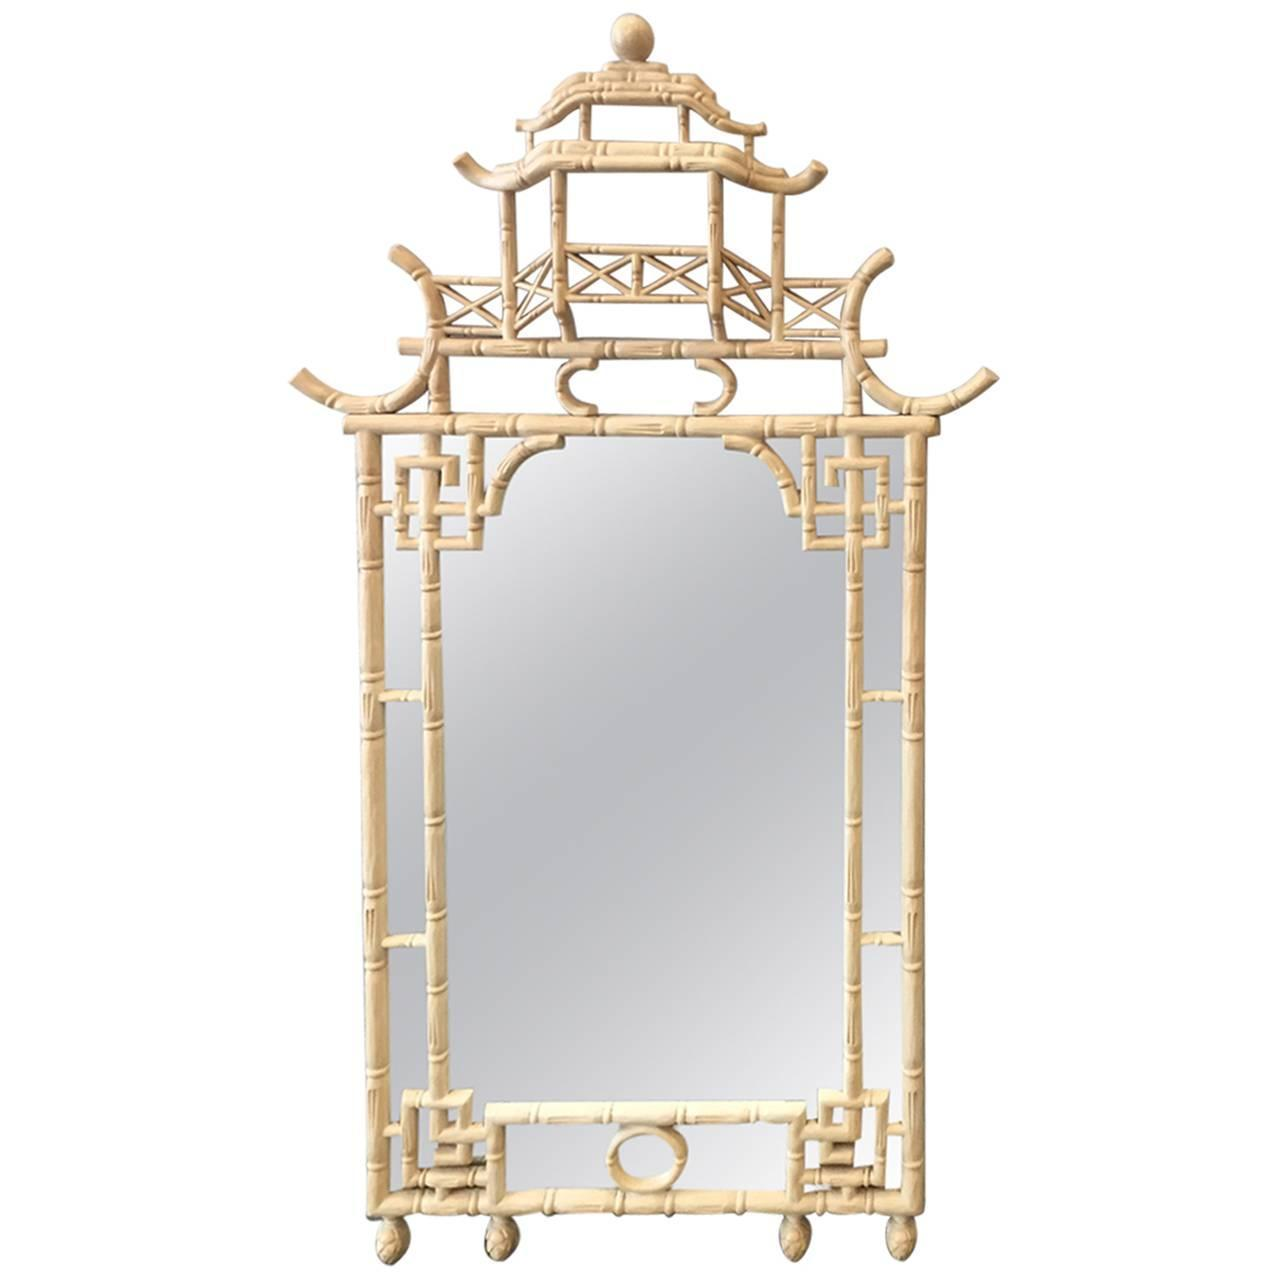 Faux bamboo chinese chippendale style mirror for sale at for Asian style mirror